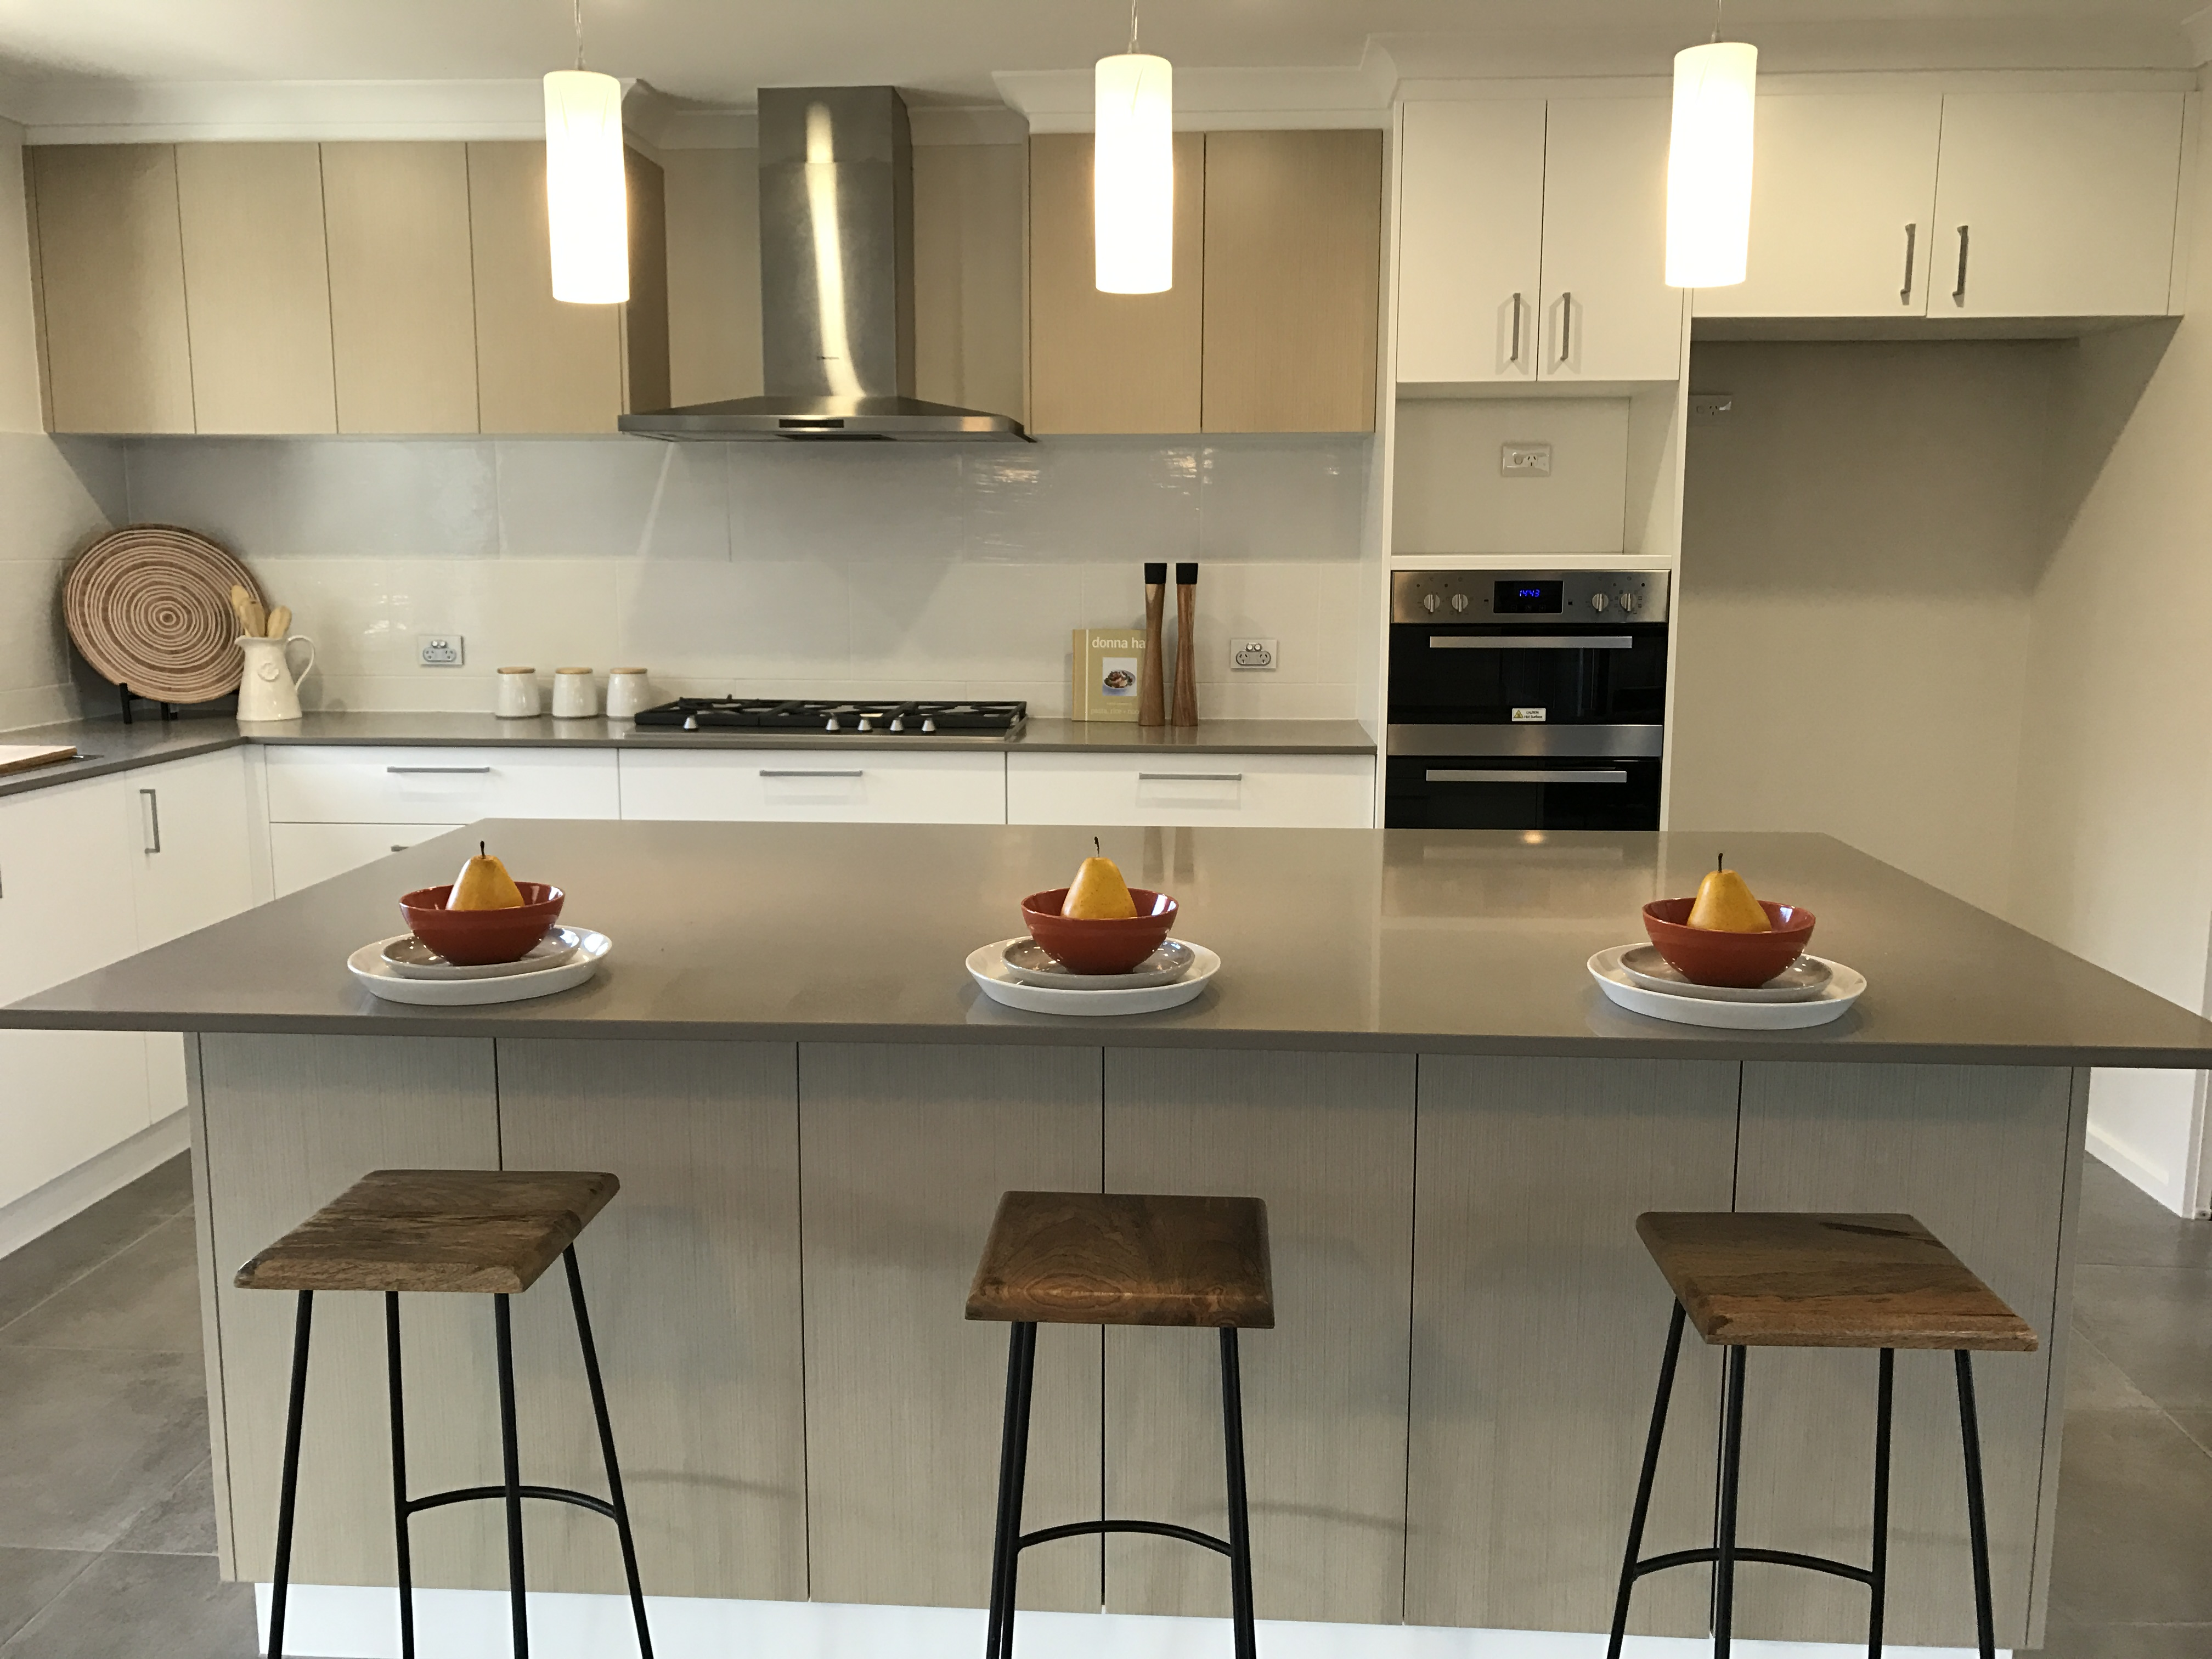 Modular Kitchen designed by Elements Property Styling for sale purpose.